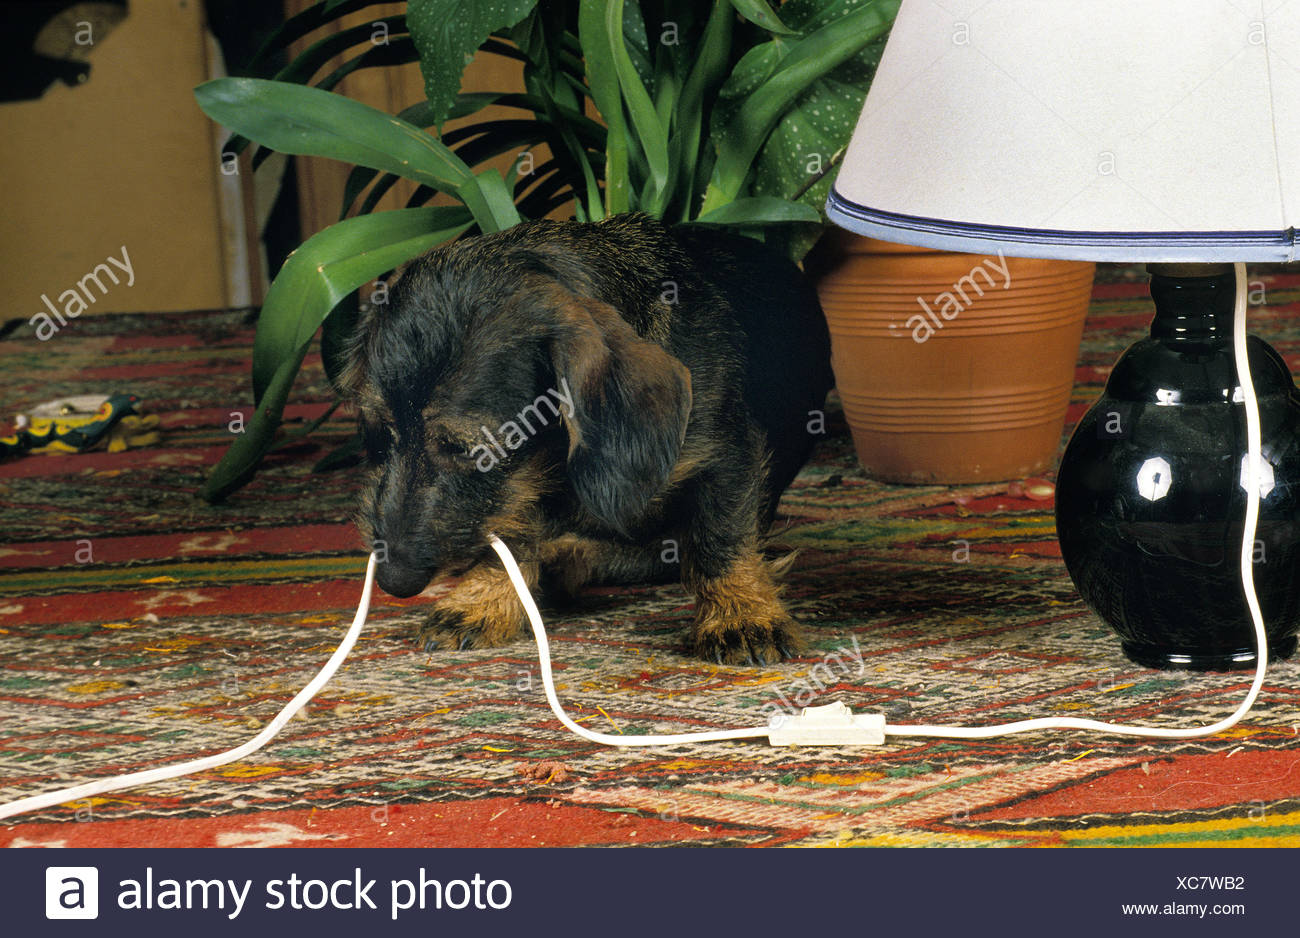 WIRE-HAIRED DACHSHUND CHEWING ELECTRIC CABLE Stock Photo: 282915334 ...